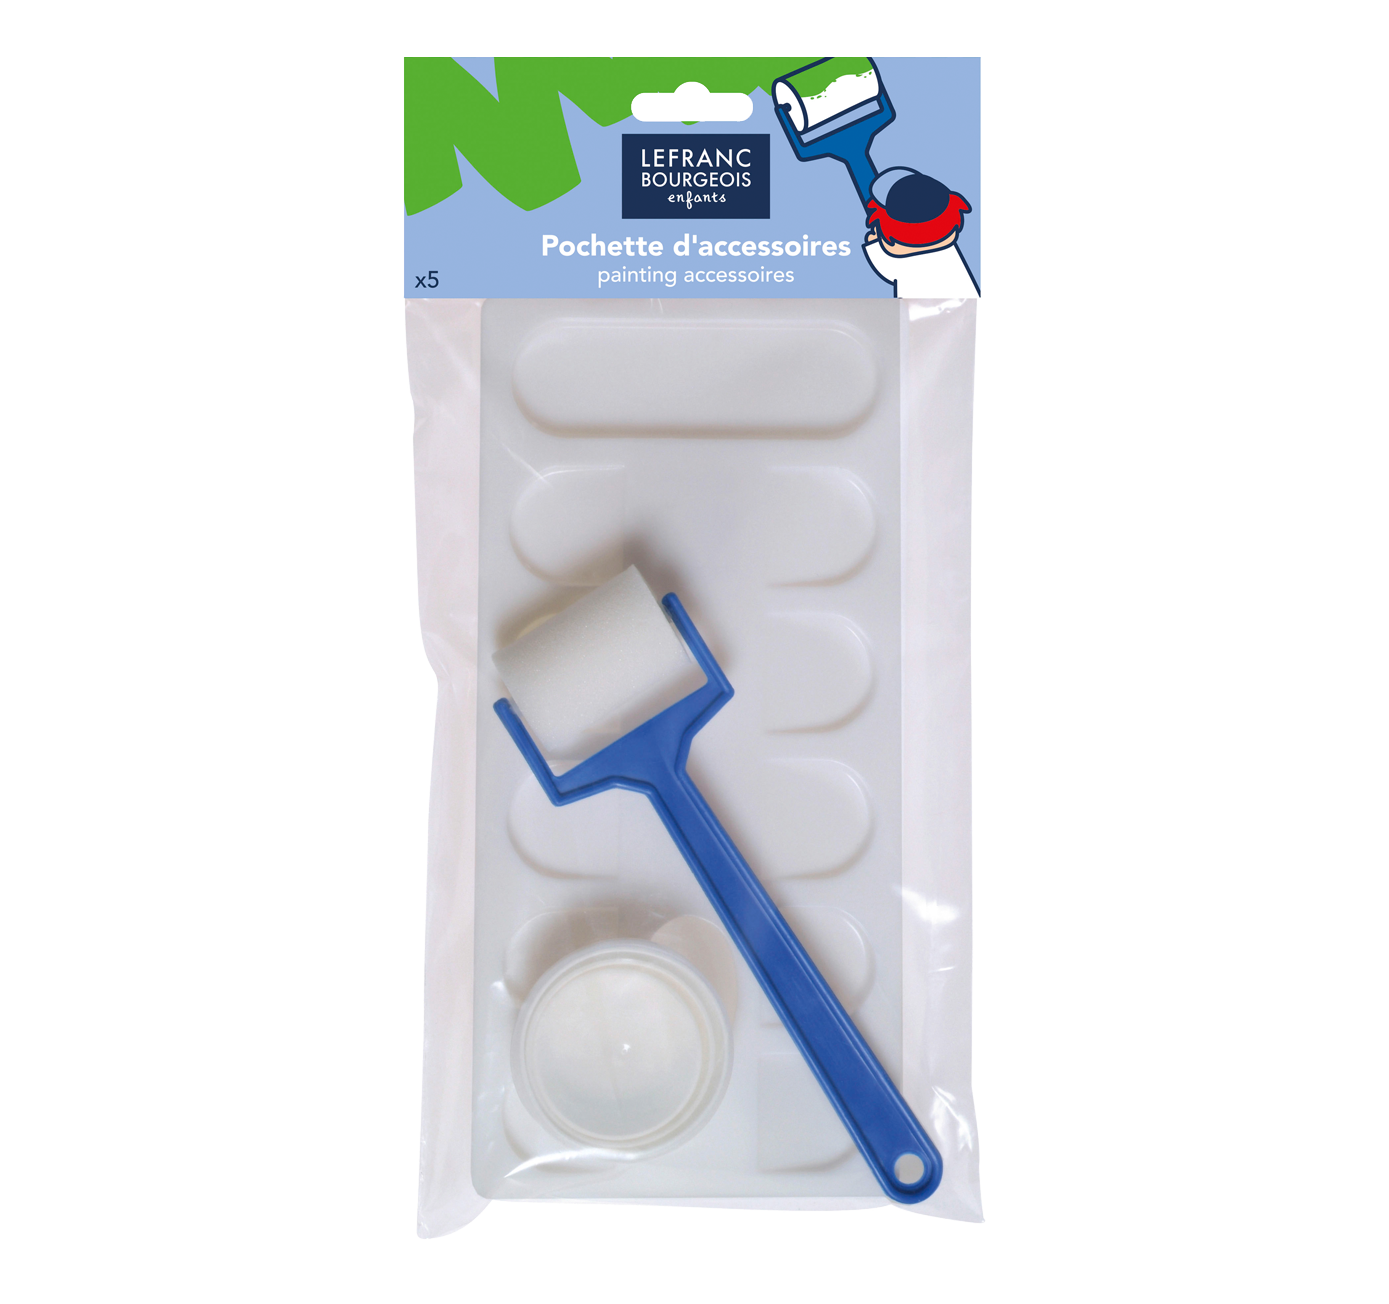 Pack of painting accessories